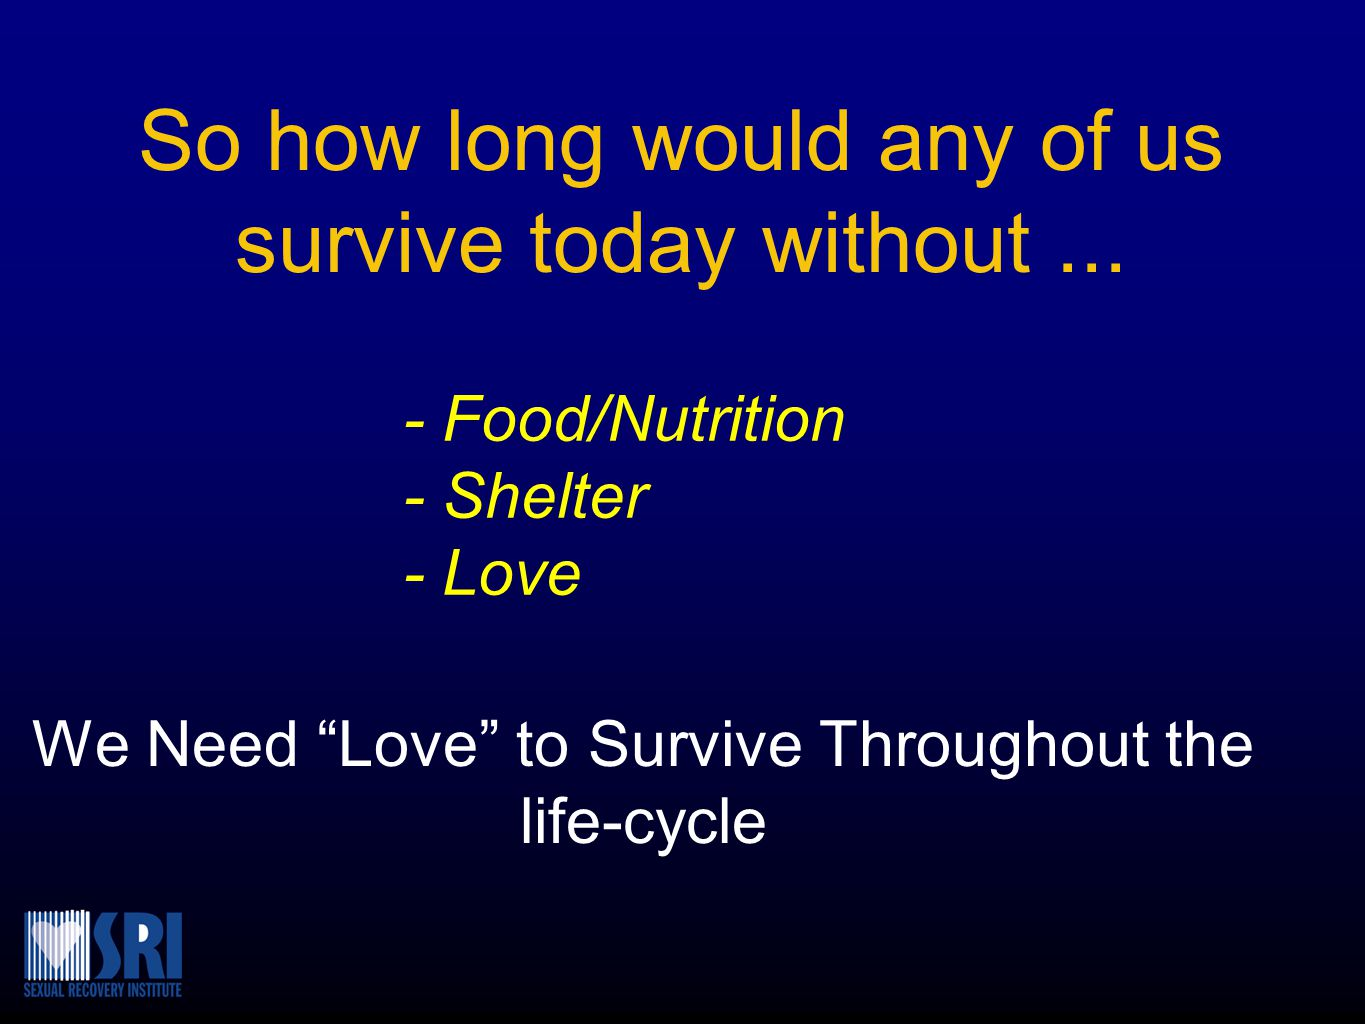 "So how long would any of us survive today without... We Need ""Love"" to Survive Throughout the life-cycle - Food/Nutrition - Shelter - Love"